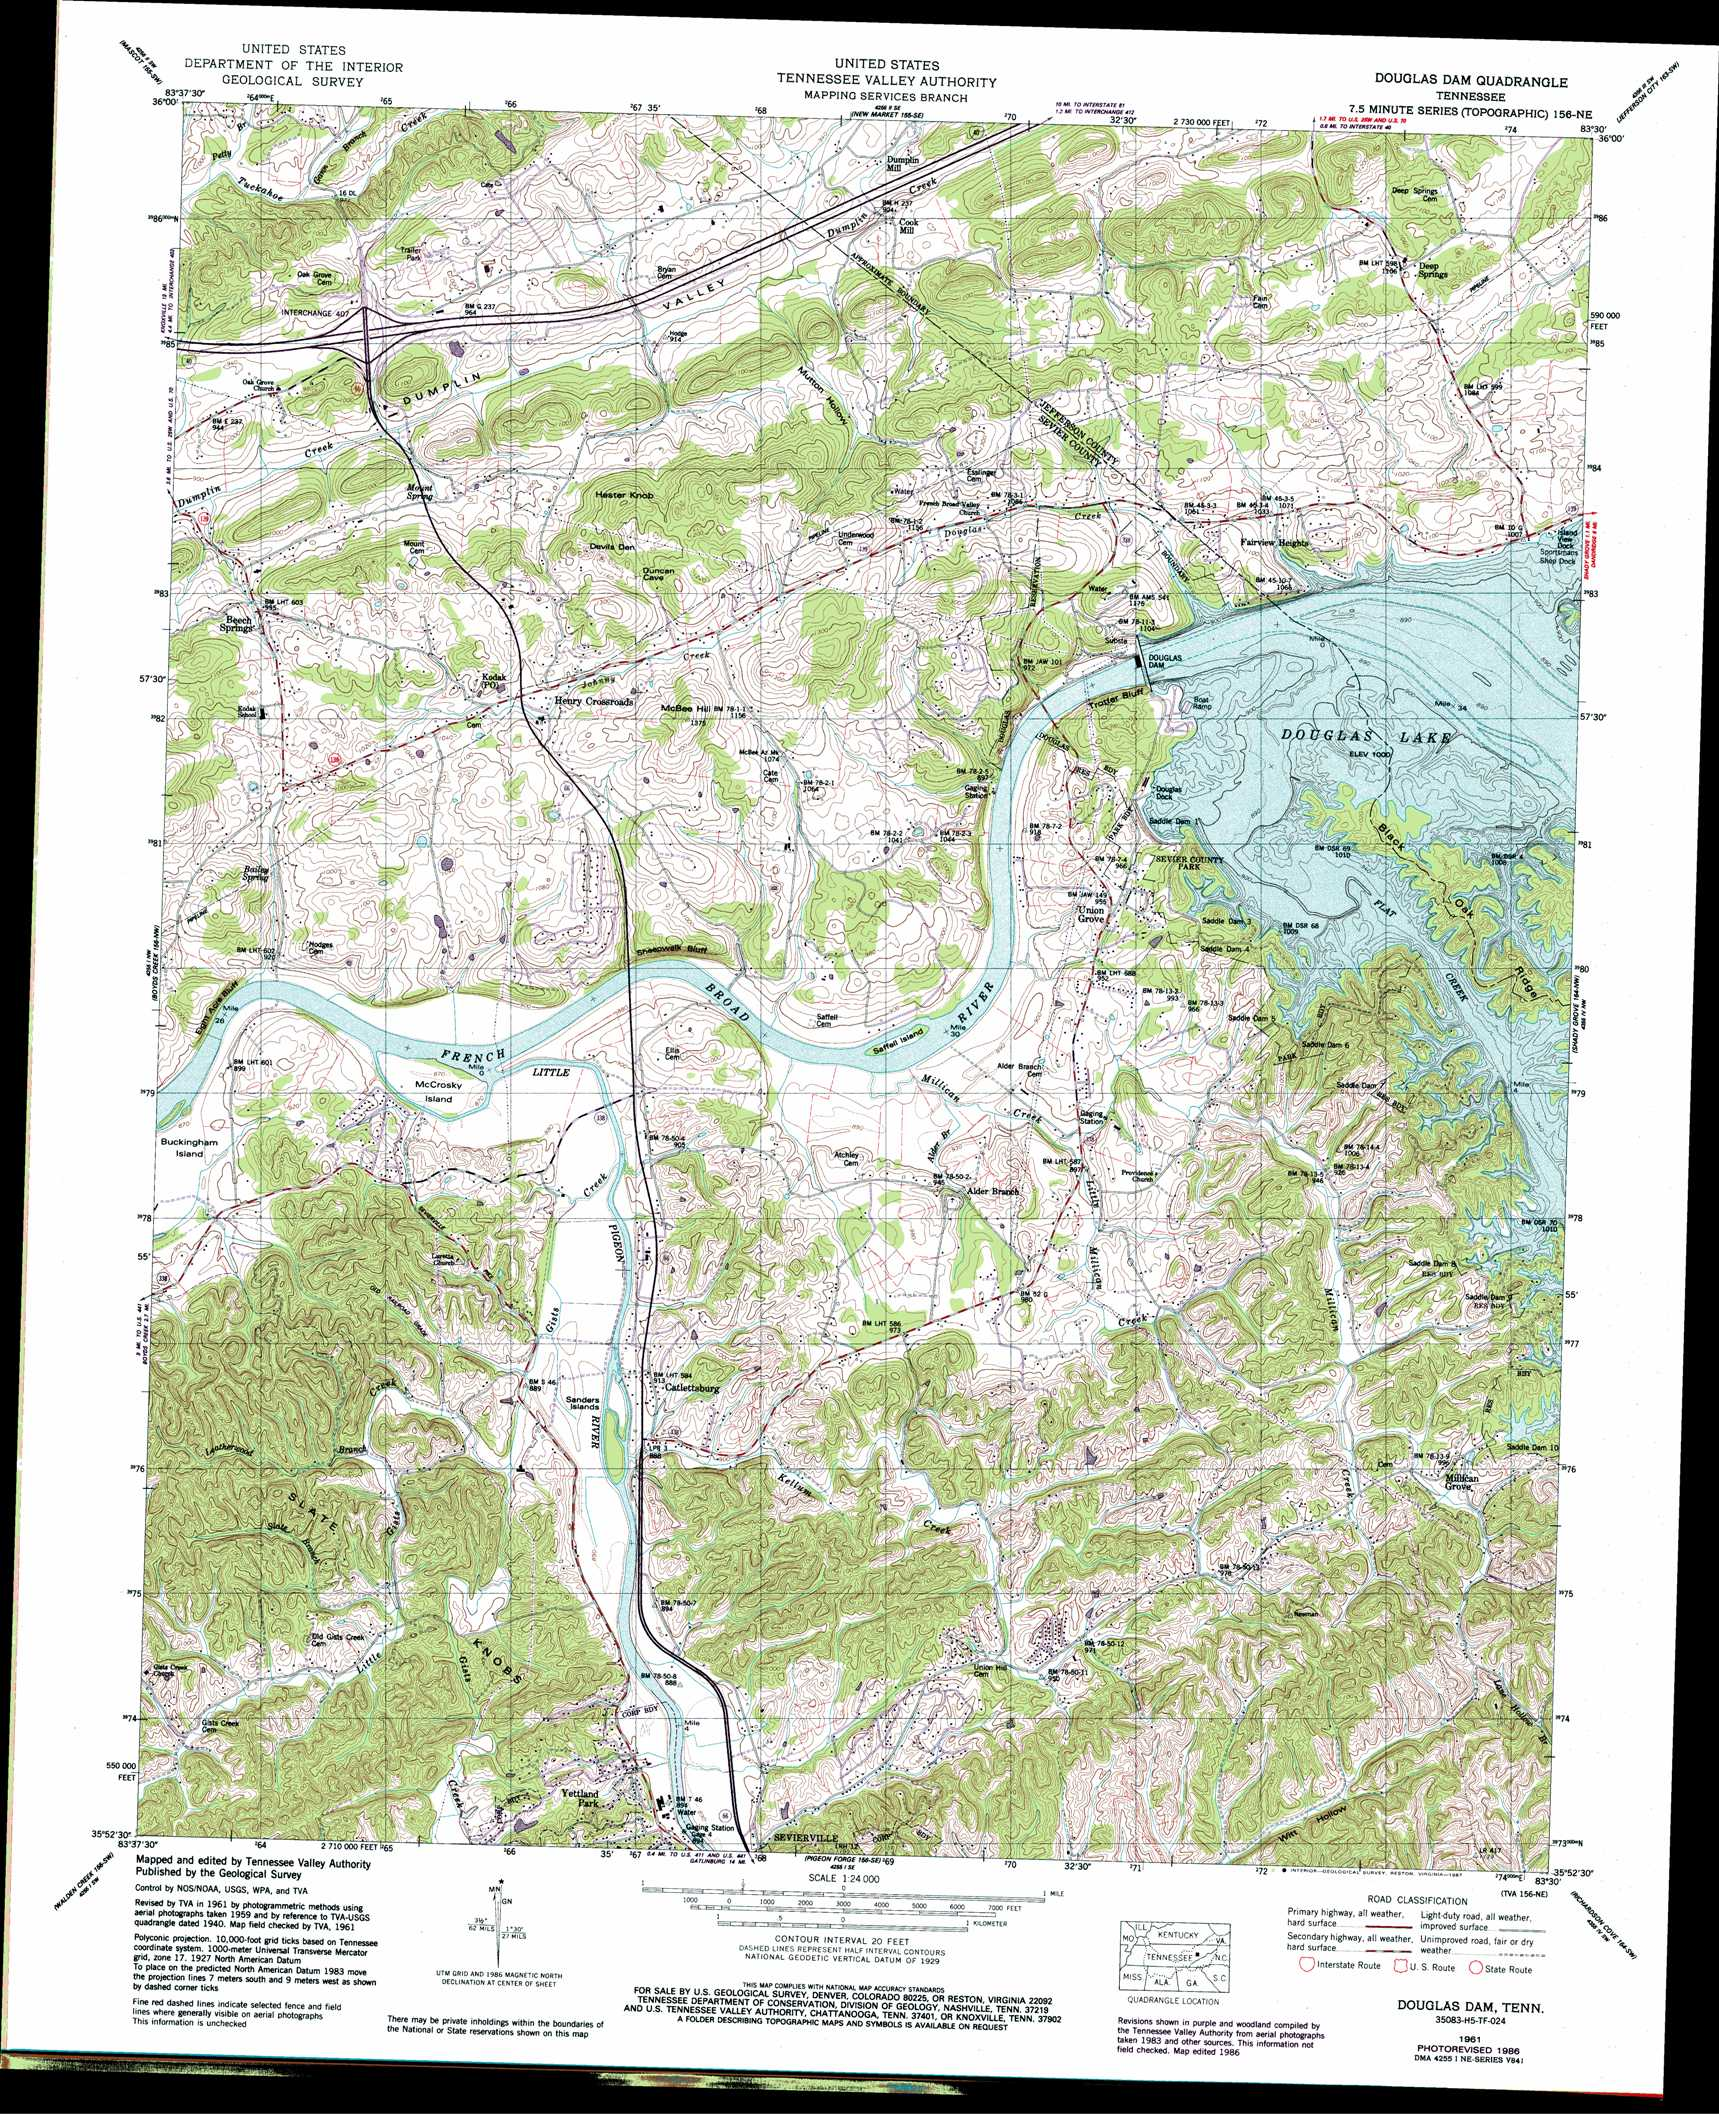 Douglas Dam Buy This Douglas Dam Topo Map